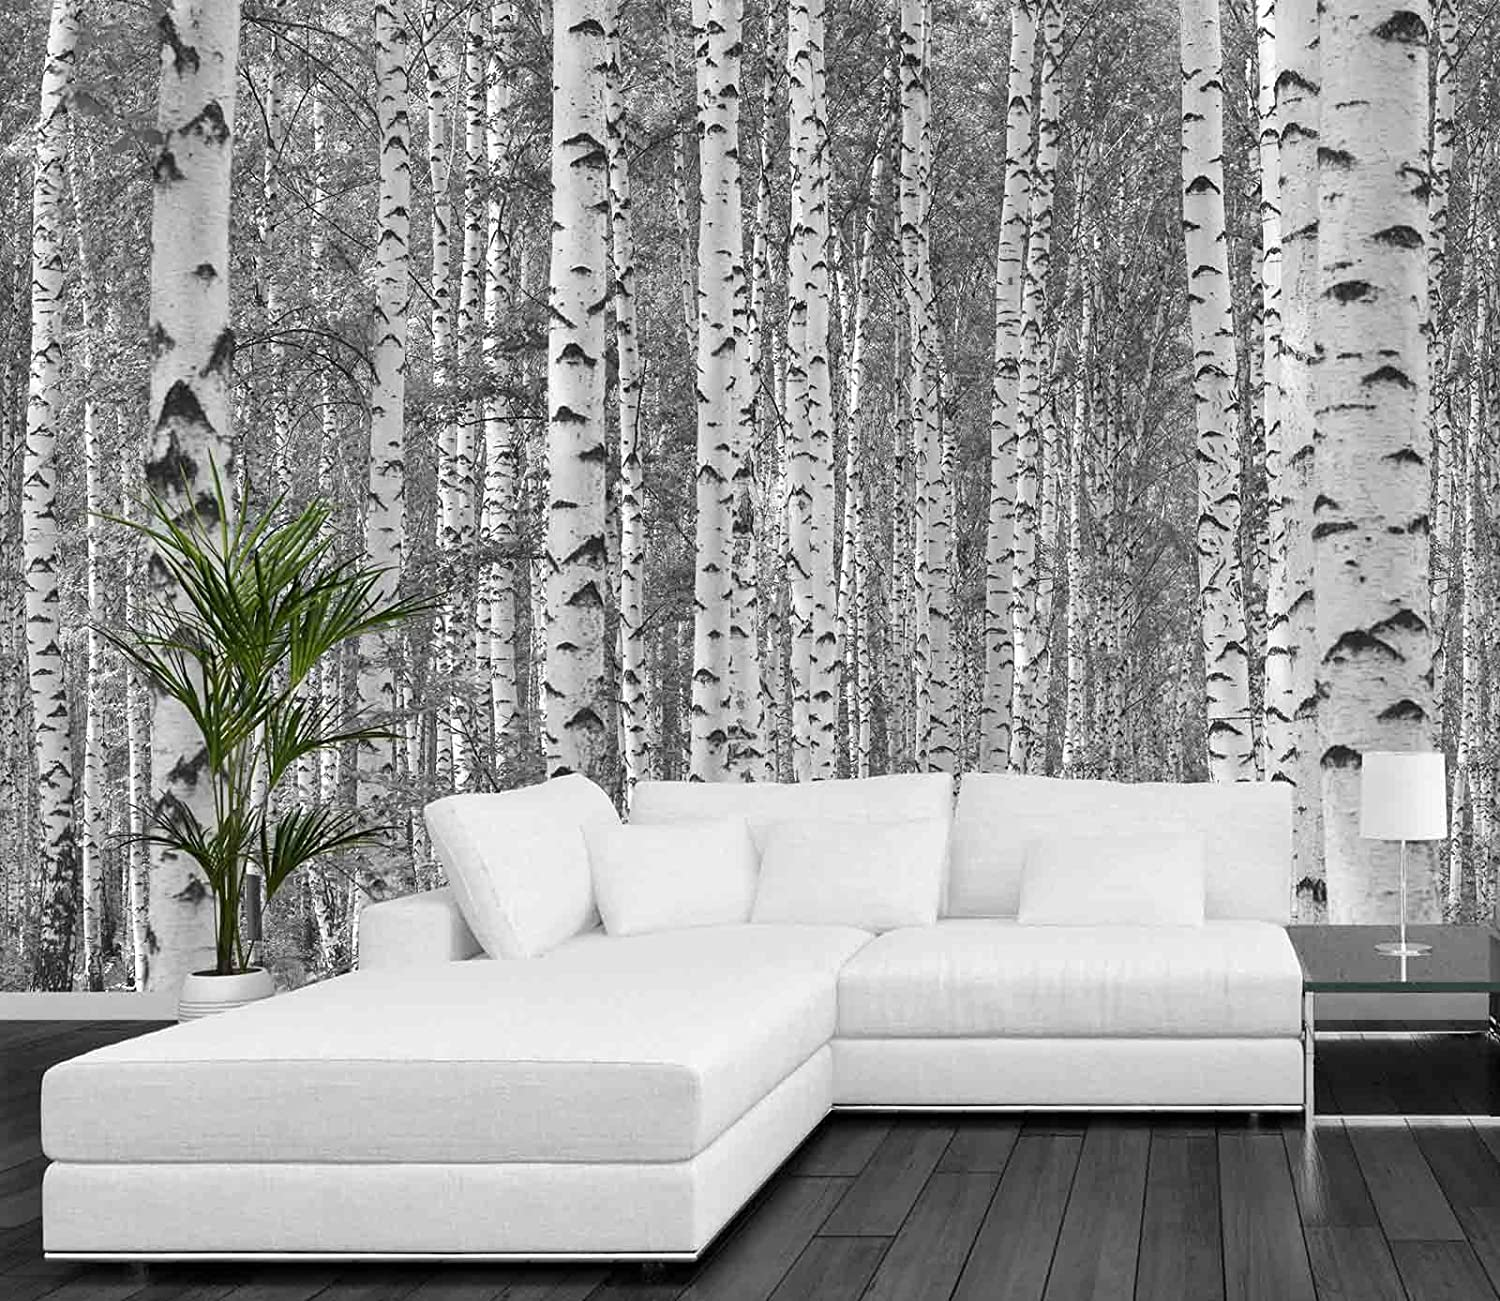 prepasted robust wallpaper mural from a high resolution black and white photo of birch trees all our murals are easy to install remove and reuse hang